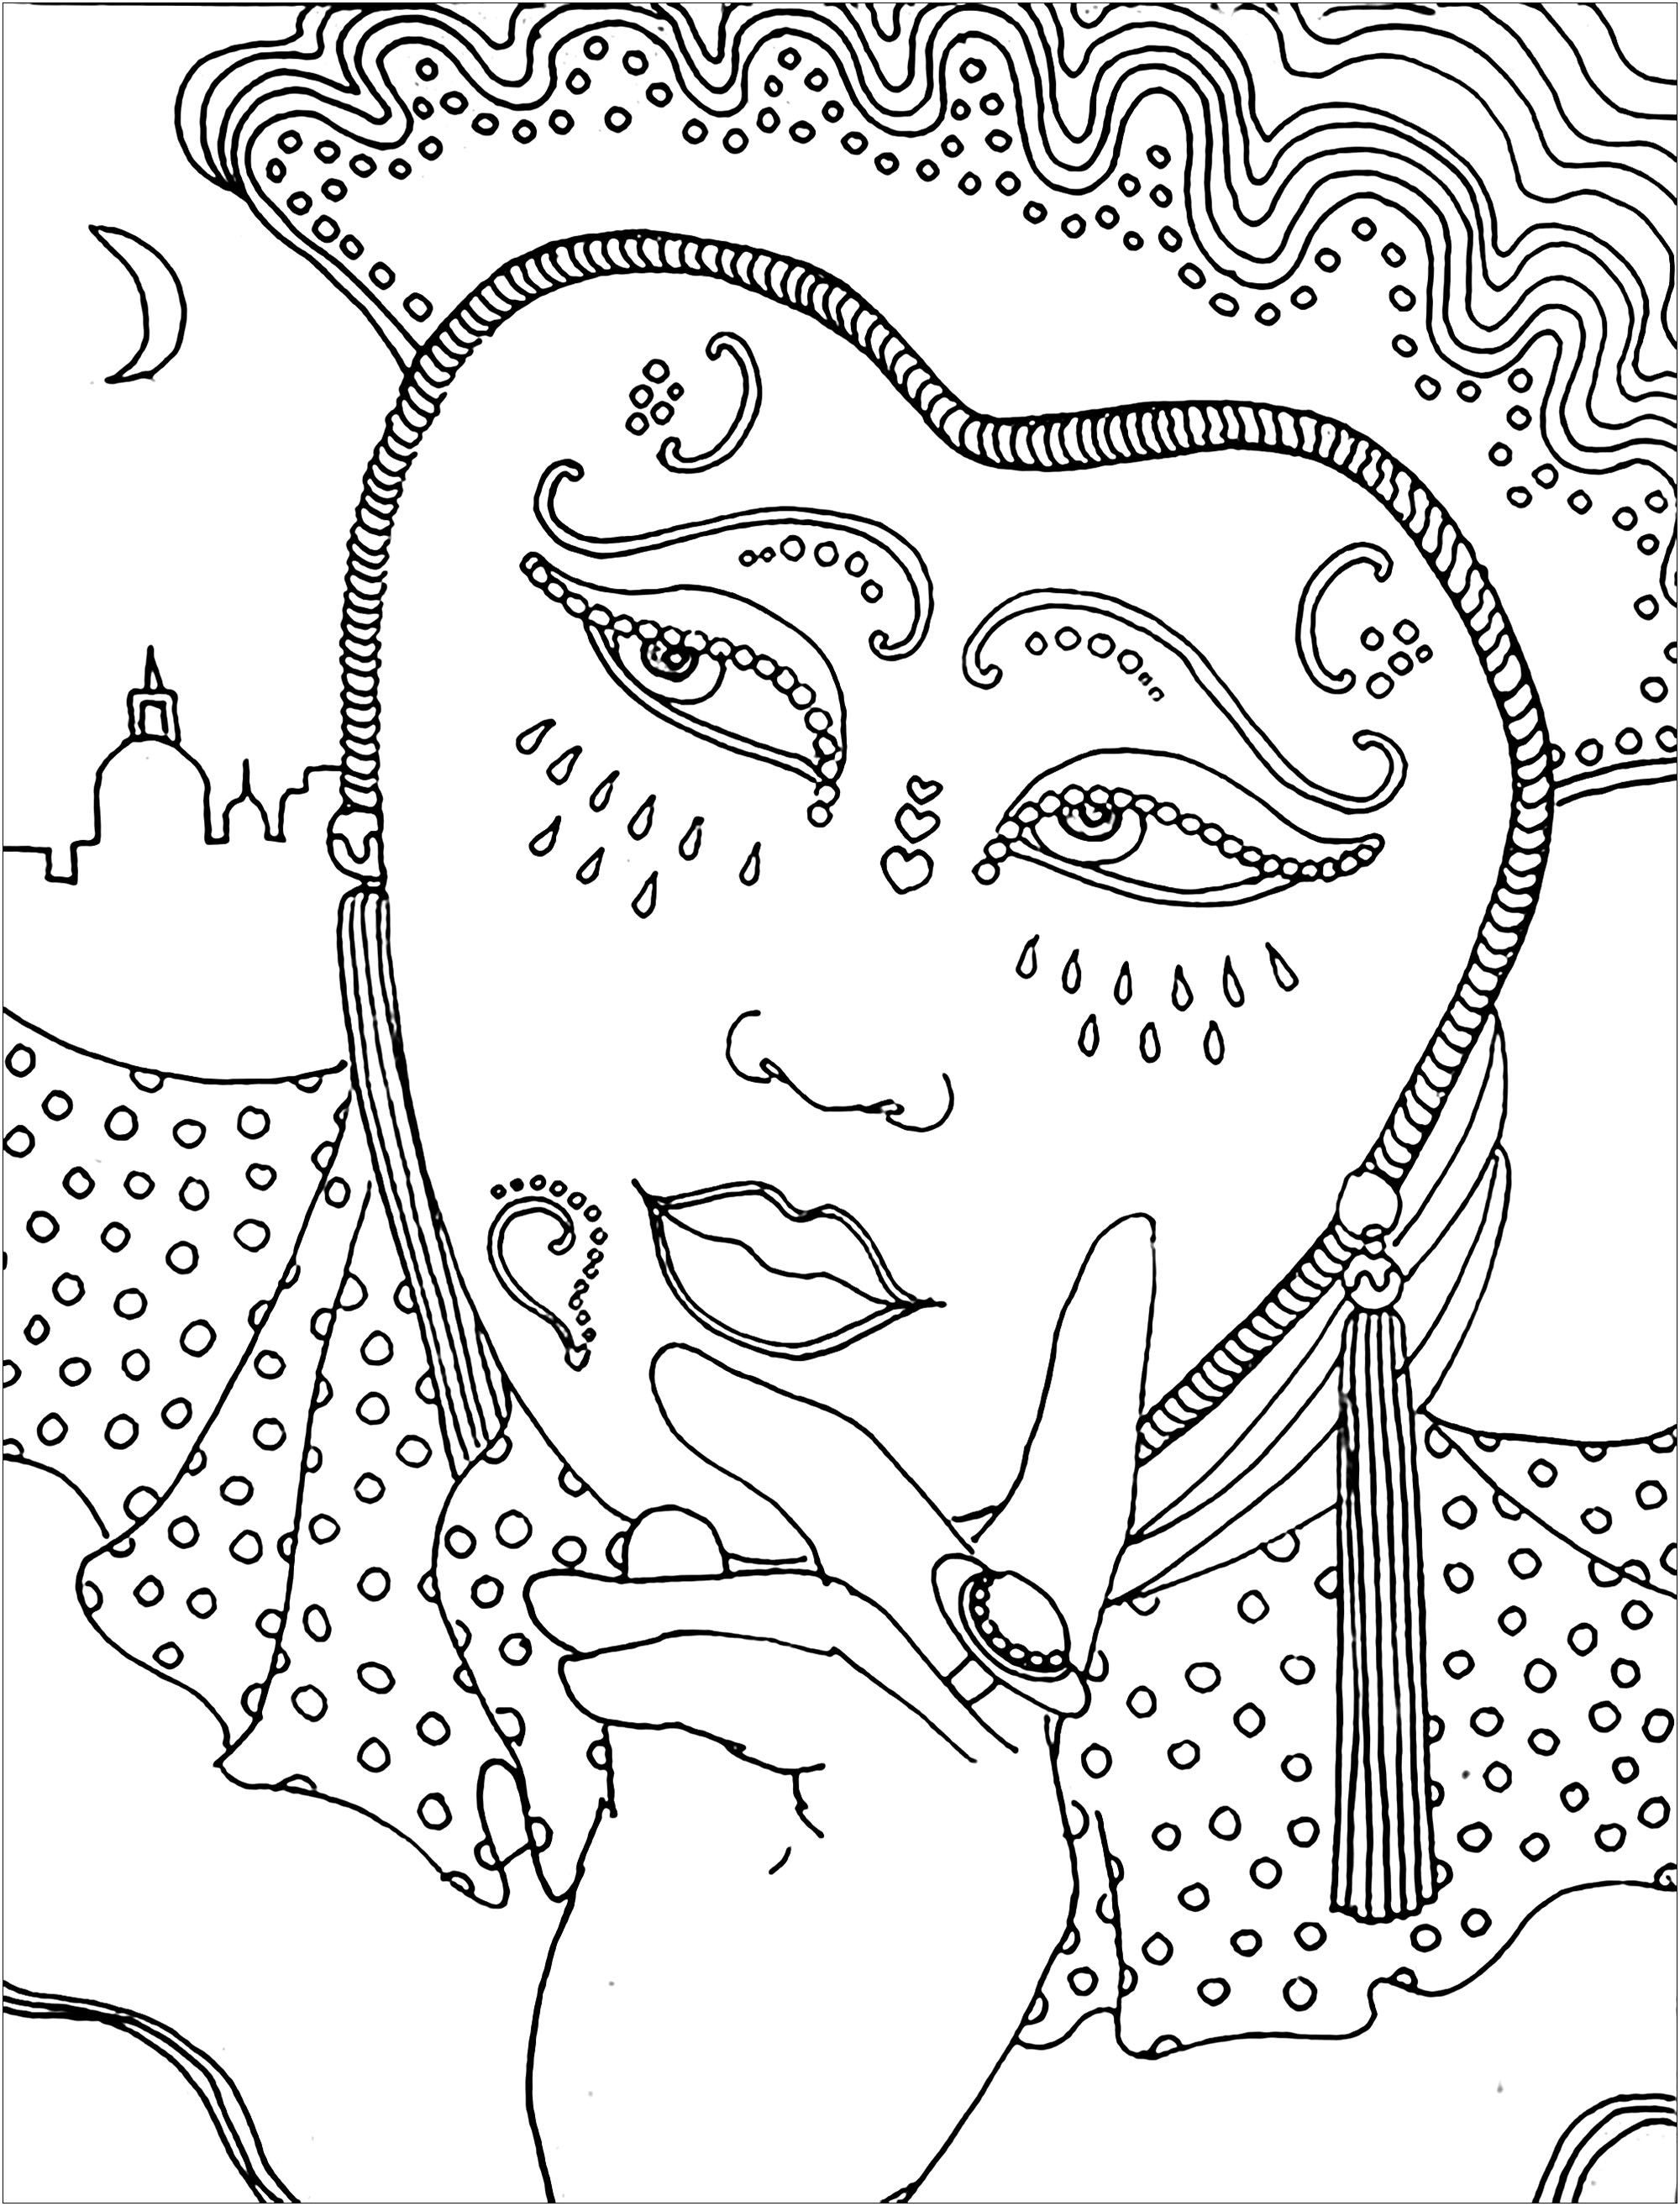 carnival coloring pages for kids - photo#25